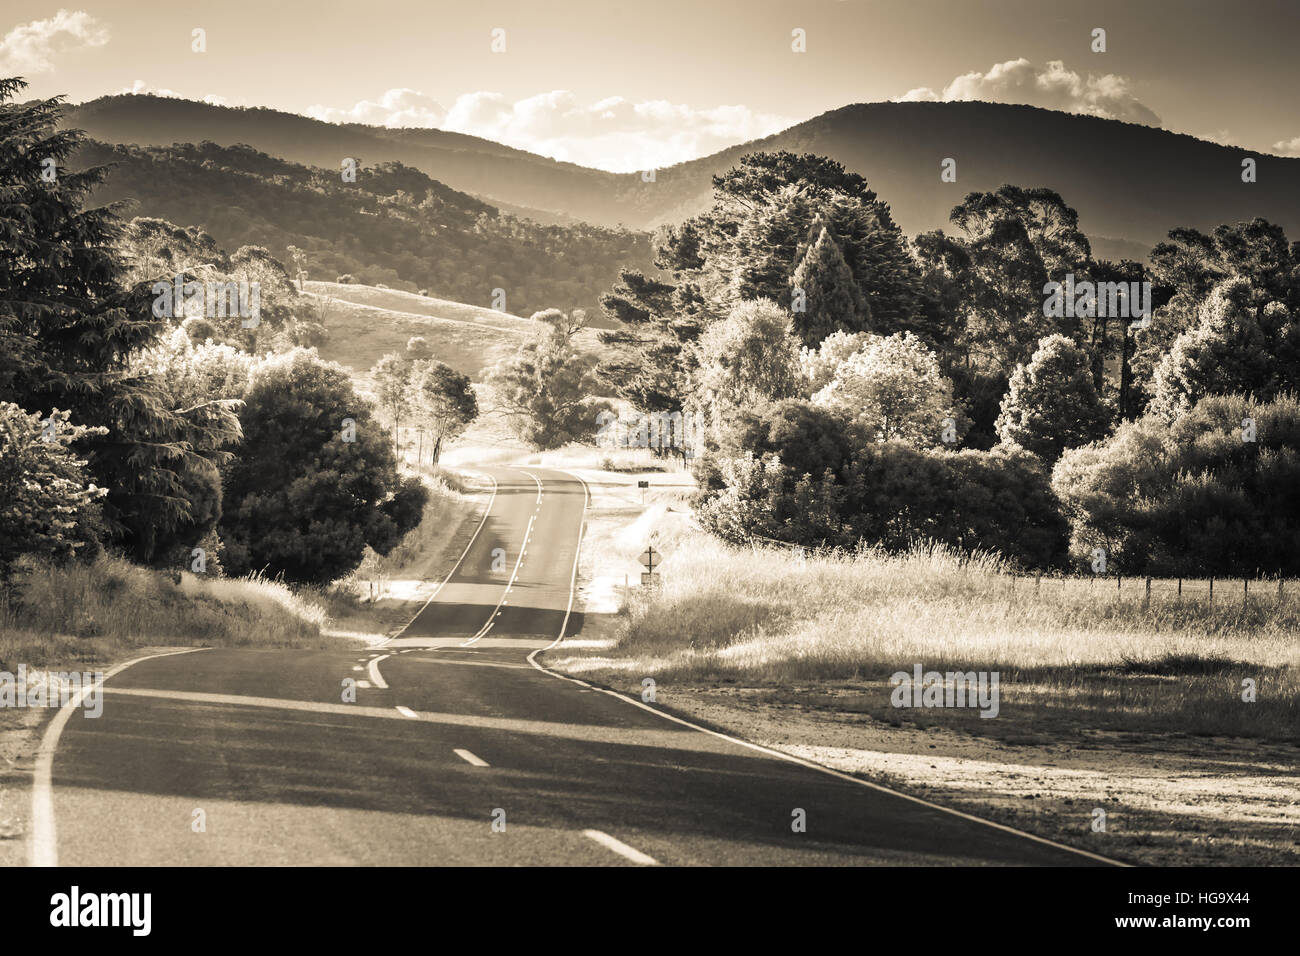 Black and white landscape. Rural road in Australian countryside at sunset - Stock Image